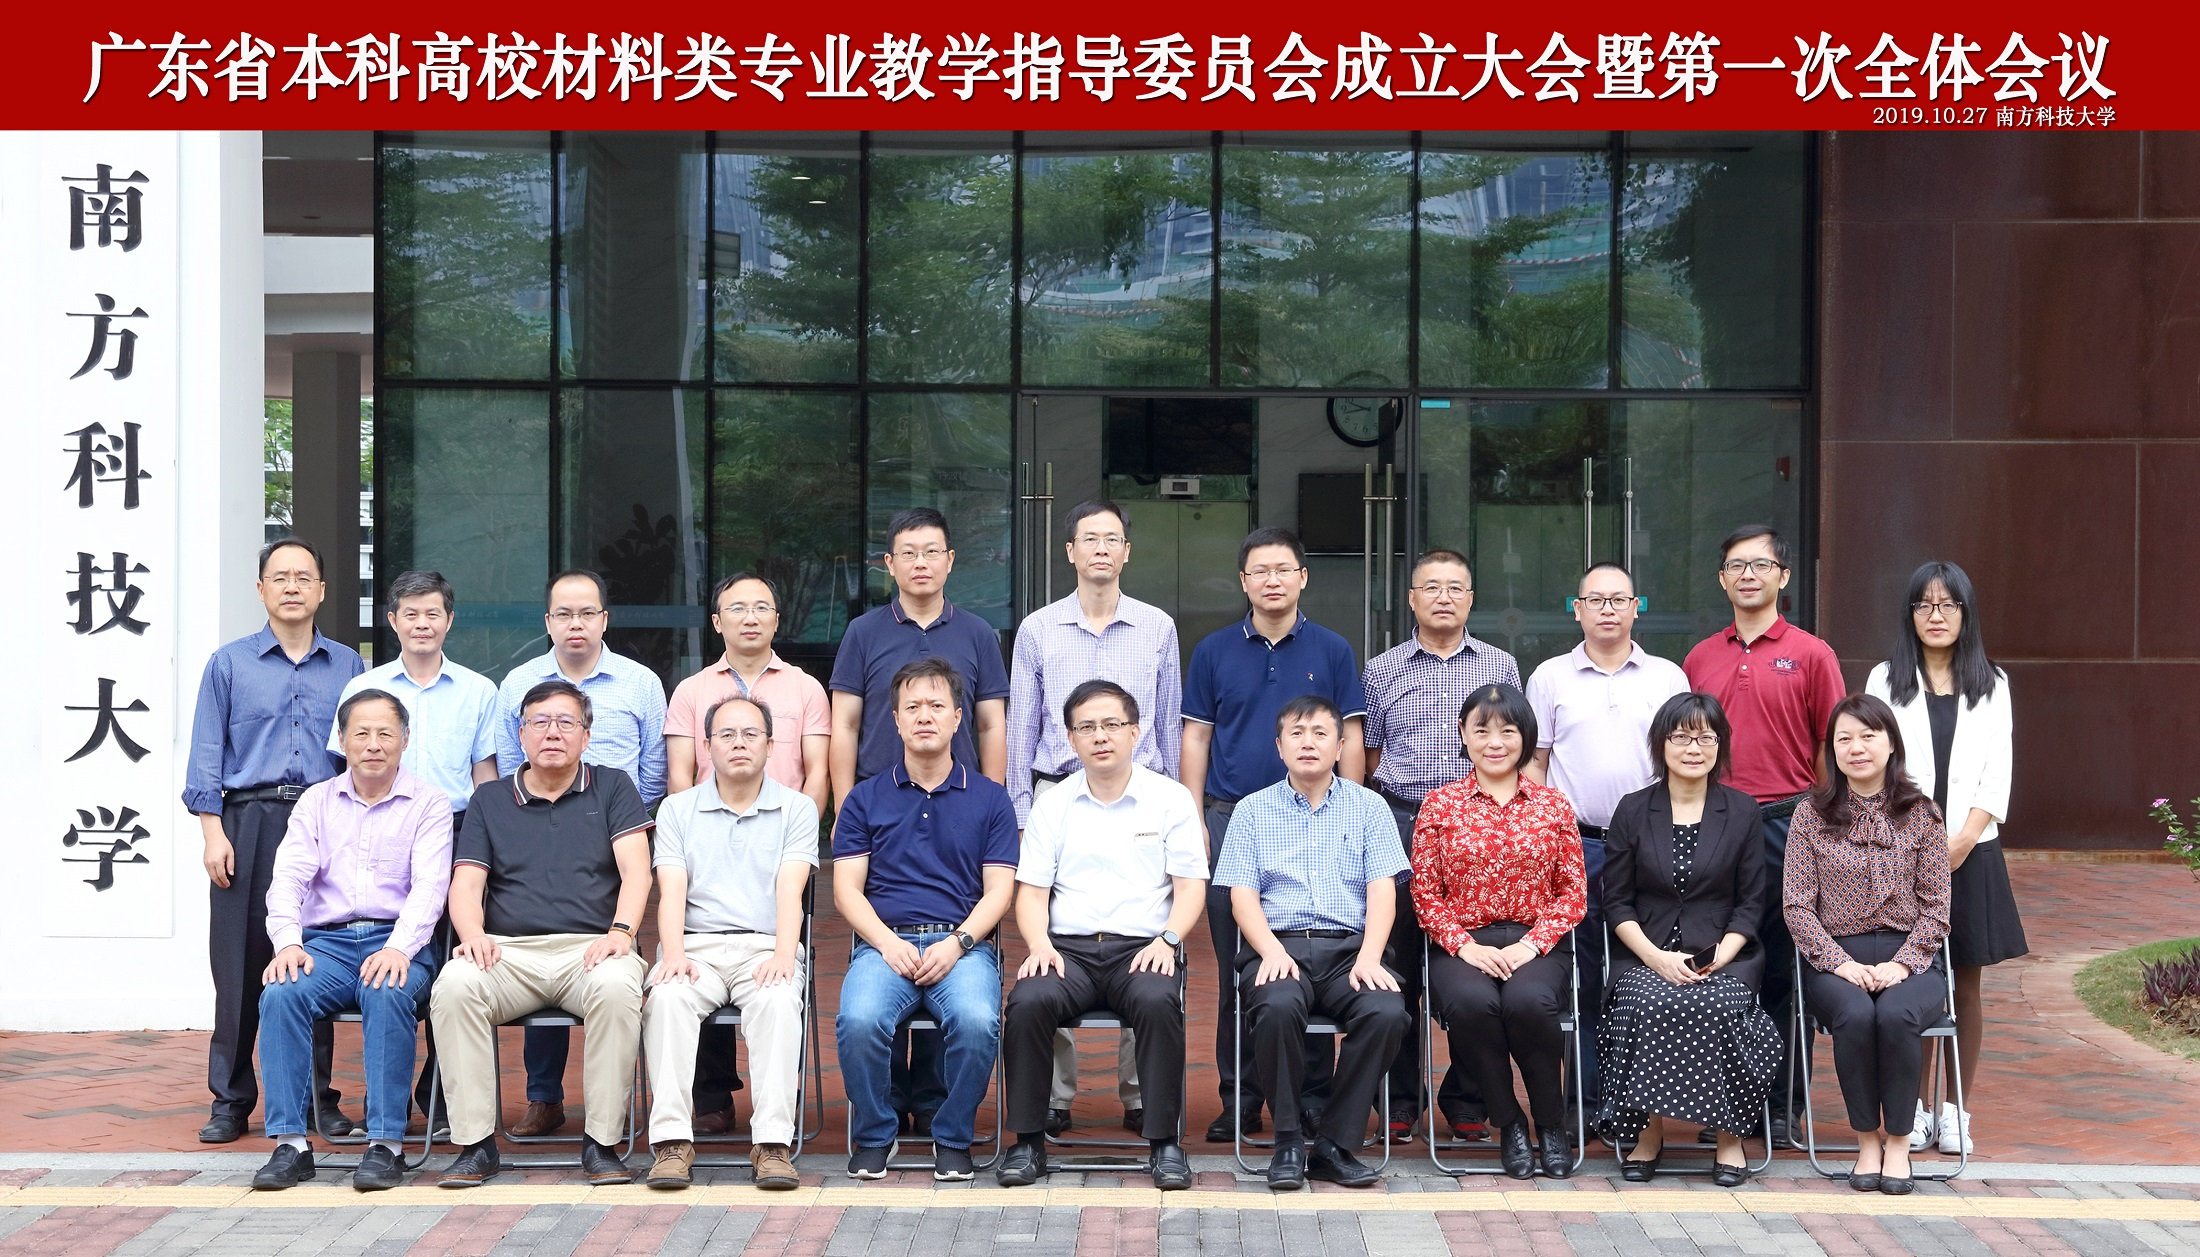 Teaching Steering Committee of Materials Science of Guangdong Undergraduate Universities meets at SUSTech